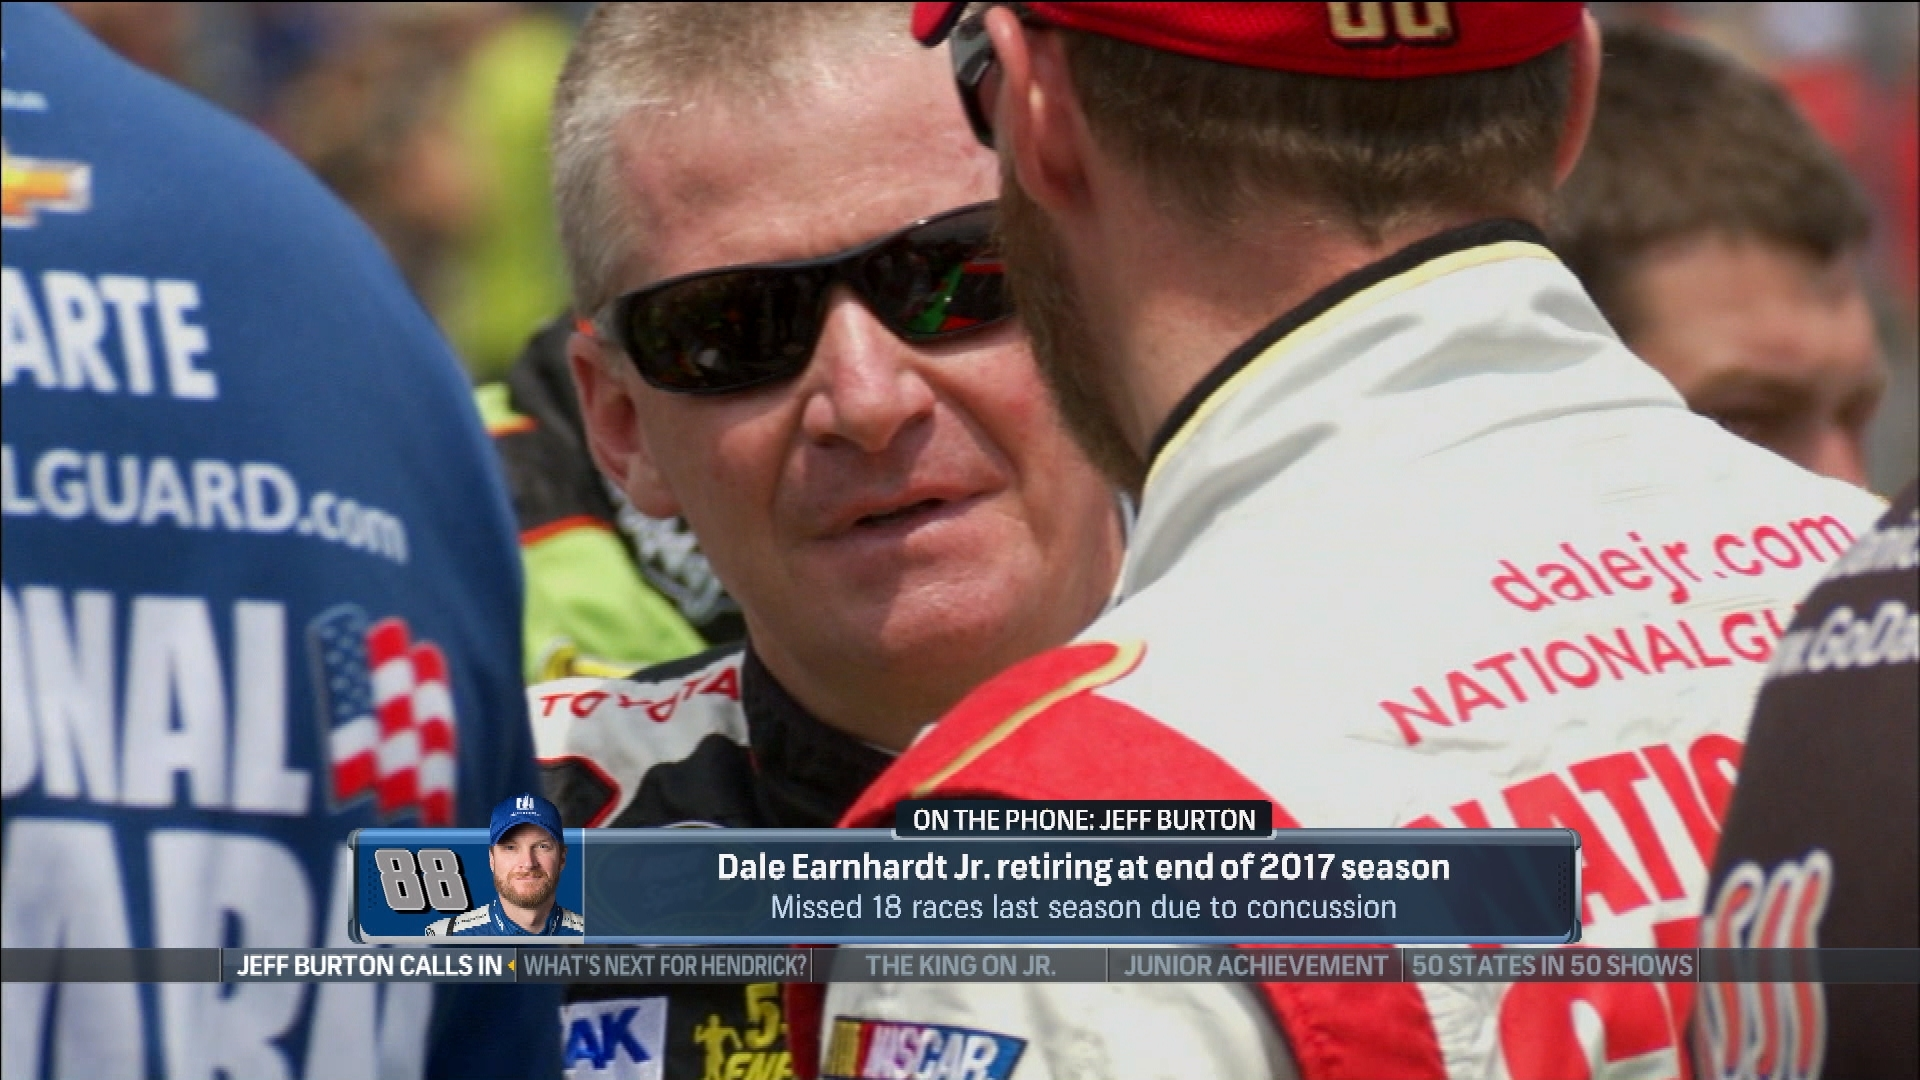 Arte Junior Replay Dale Jr Retires Earnhardt Will Have Impact On Nascar Says Jeff